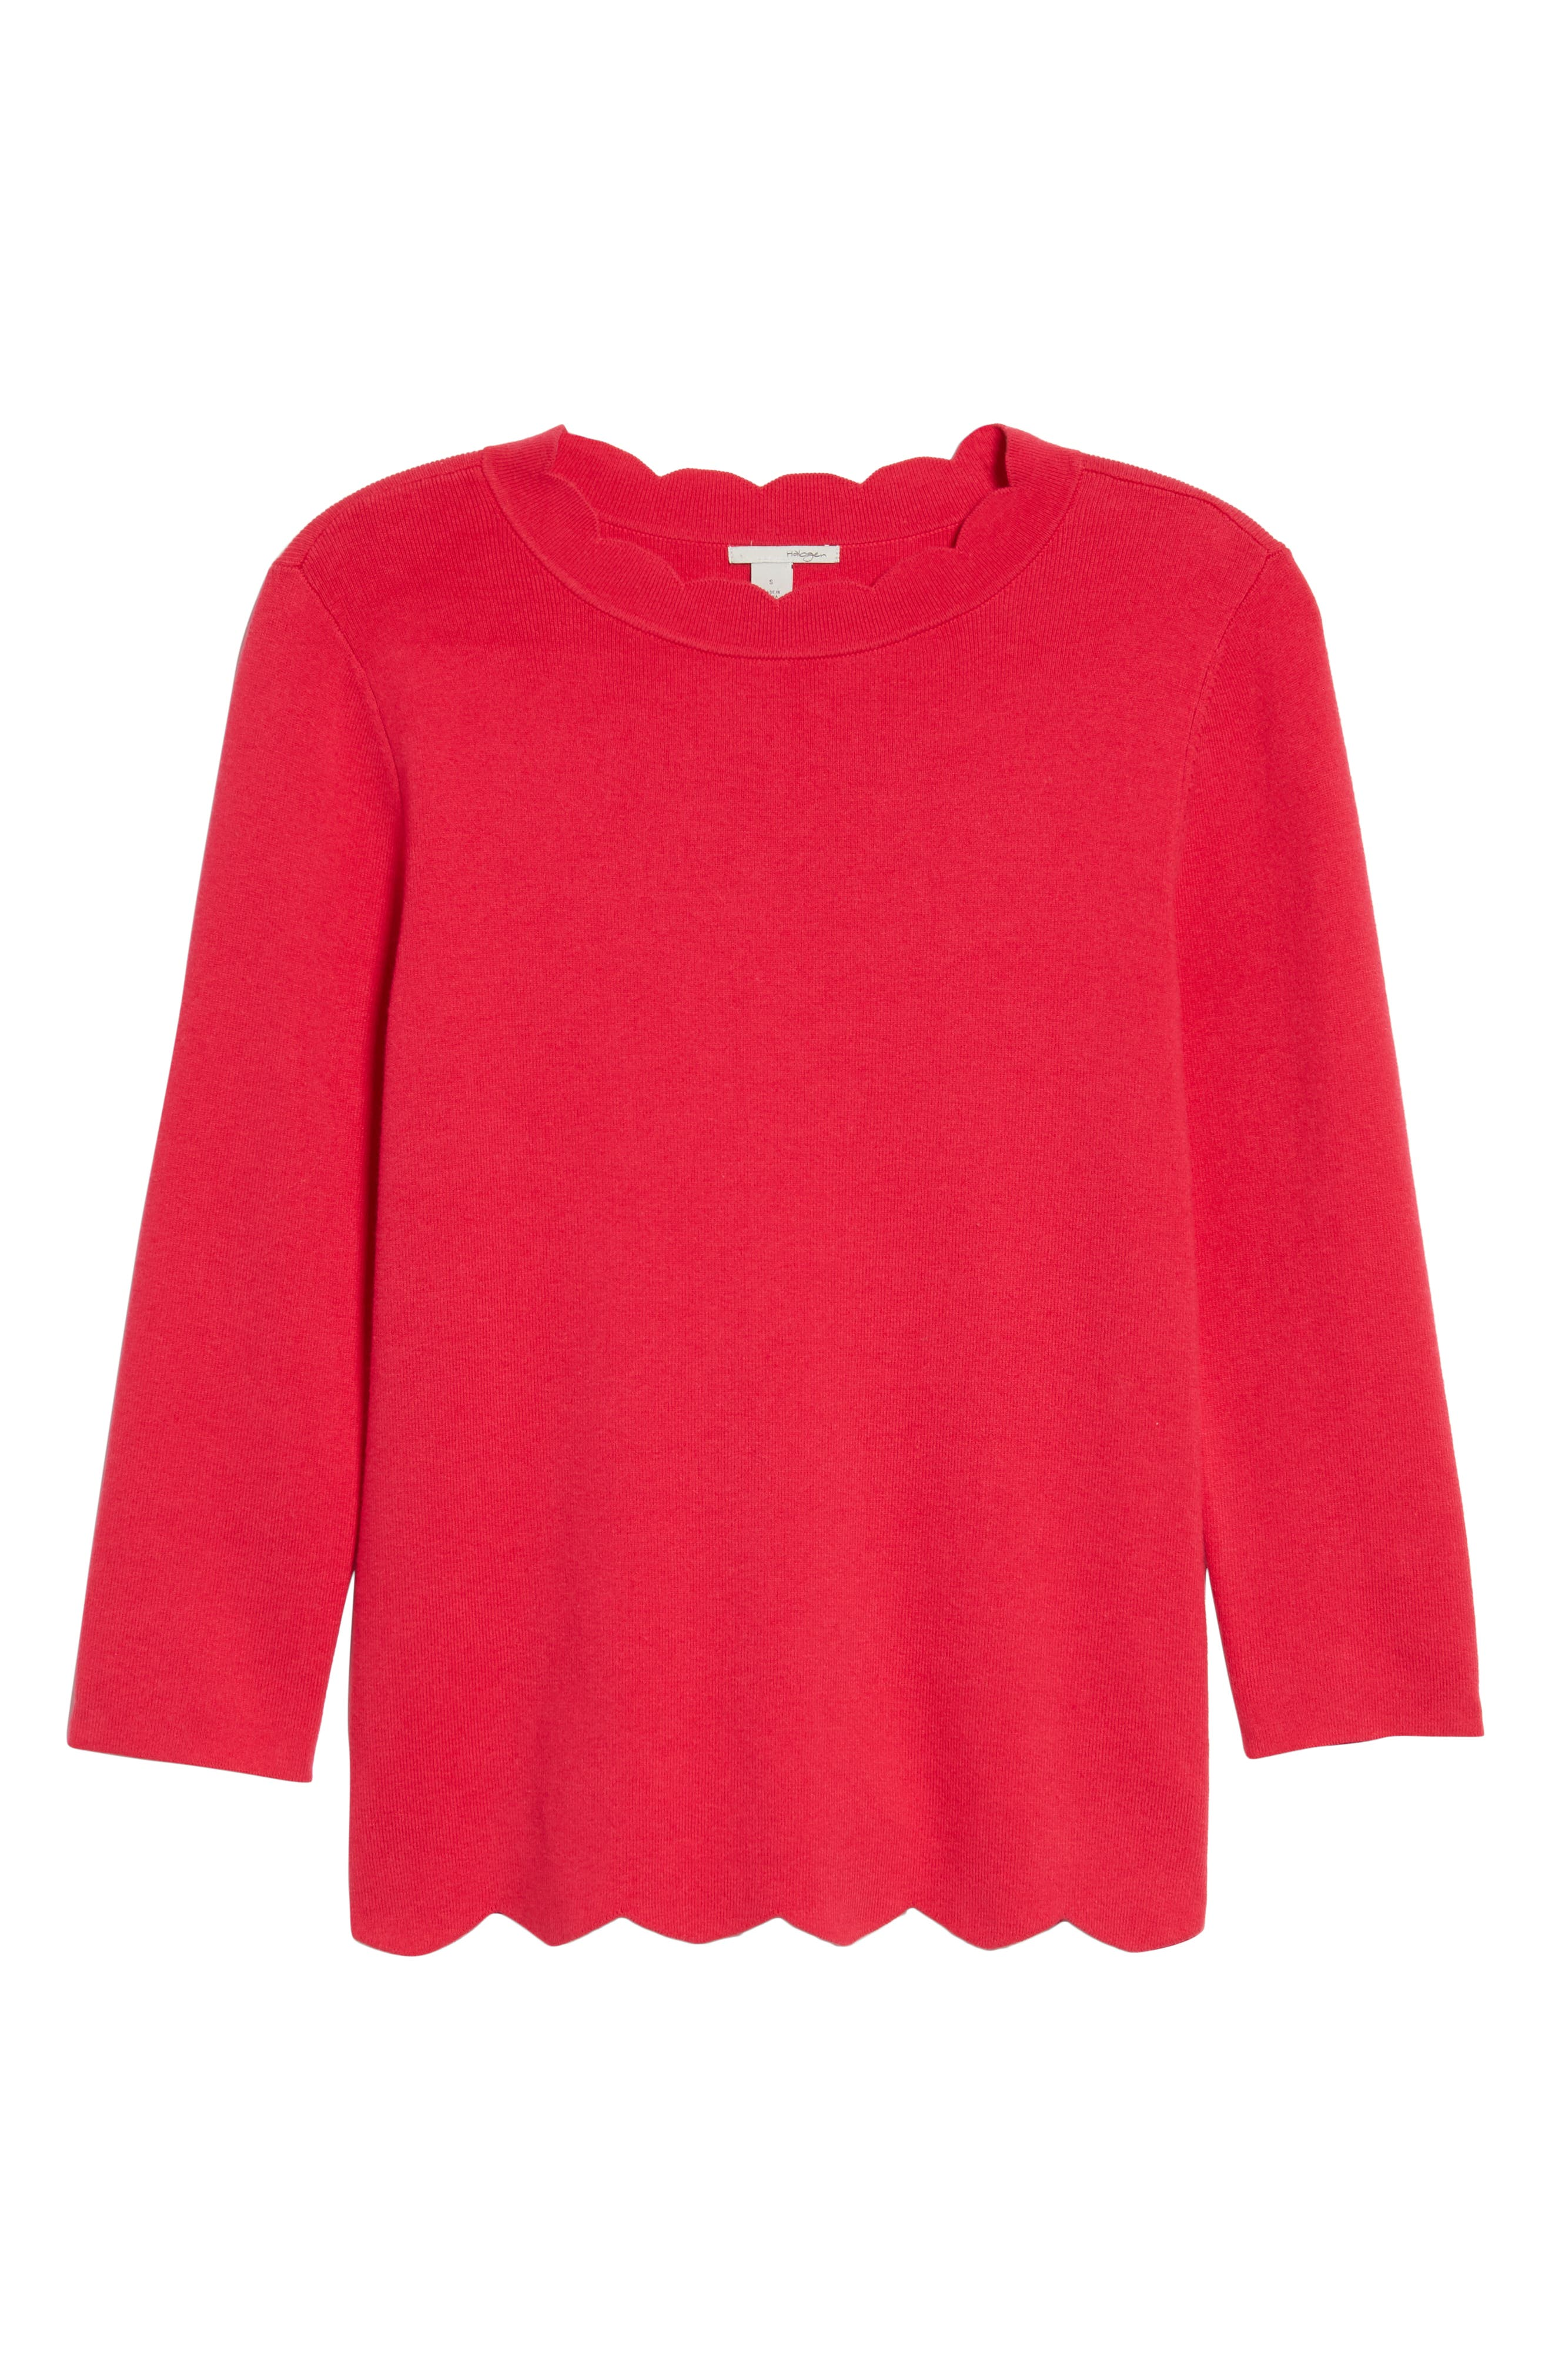 Halogen Scallop Edge Sweater,                             Alternate thumbnail 59, color,